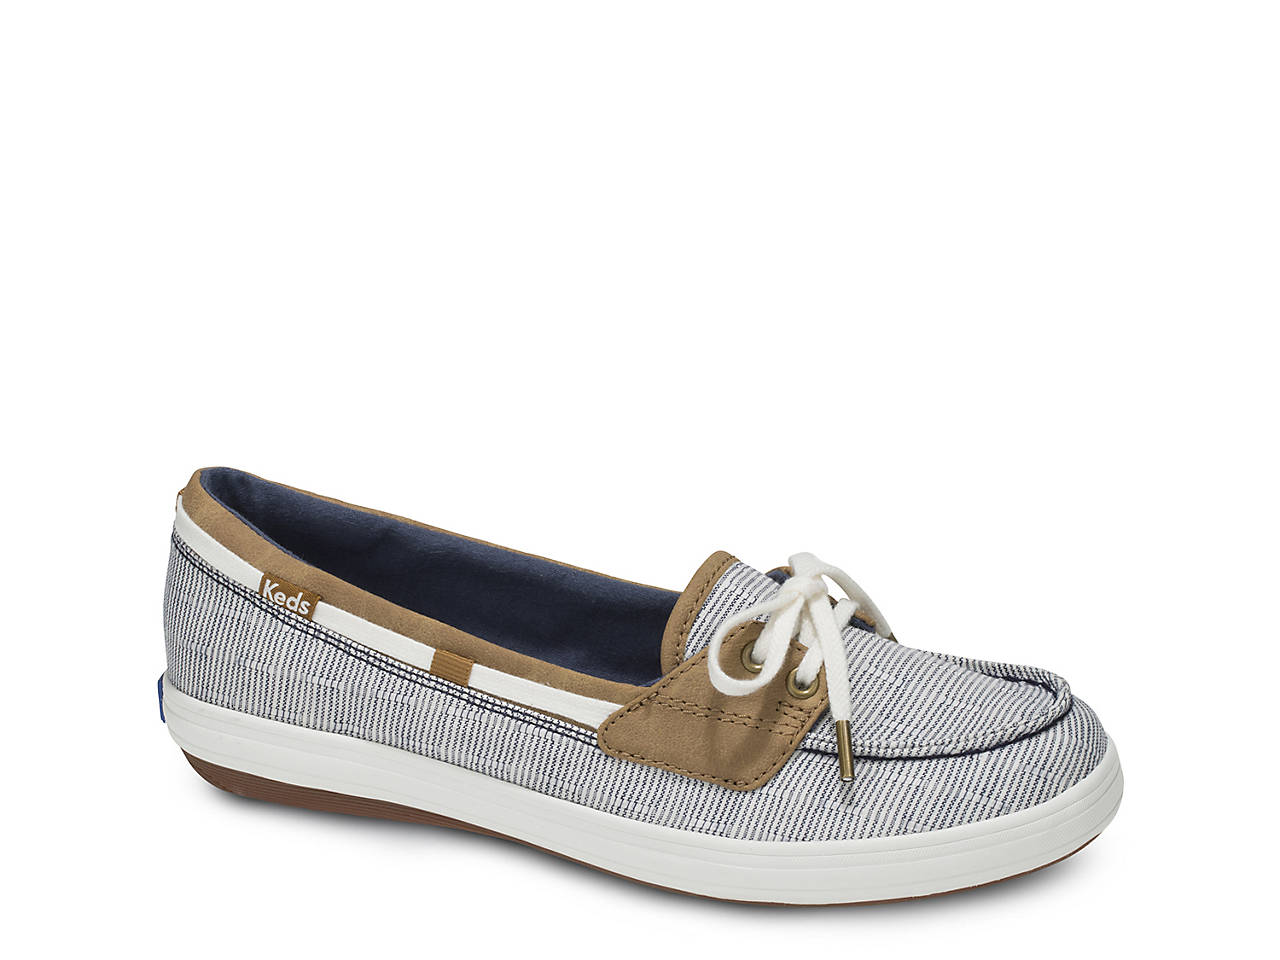 21d61e53db Keds Glimmer Boat Shoe - Women's Women's Shoes | DSW